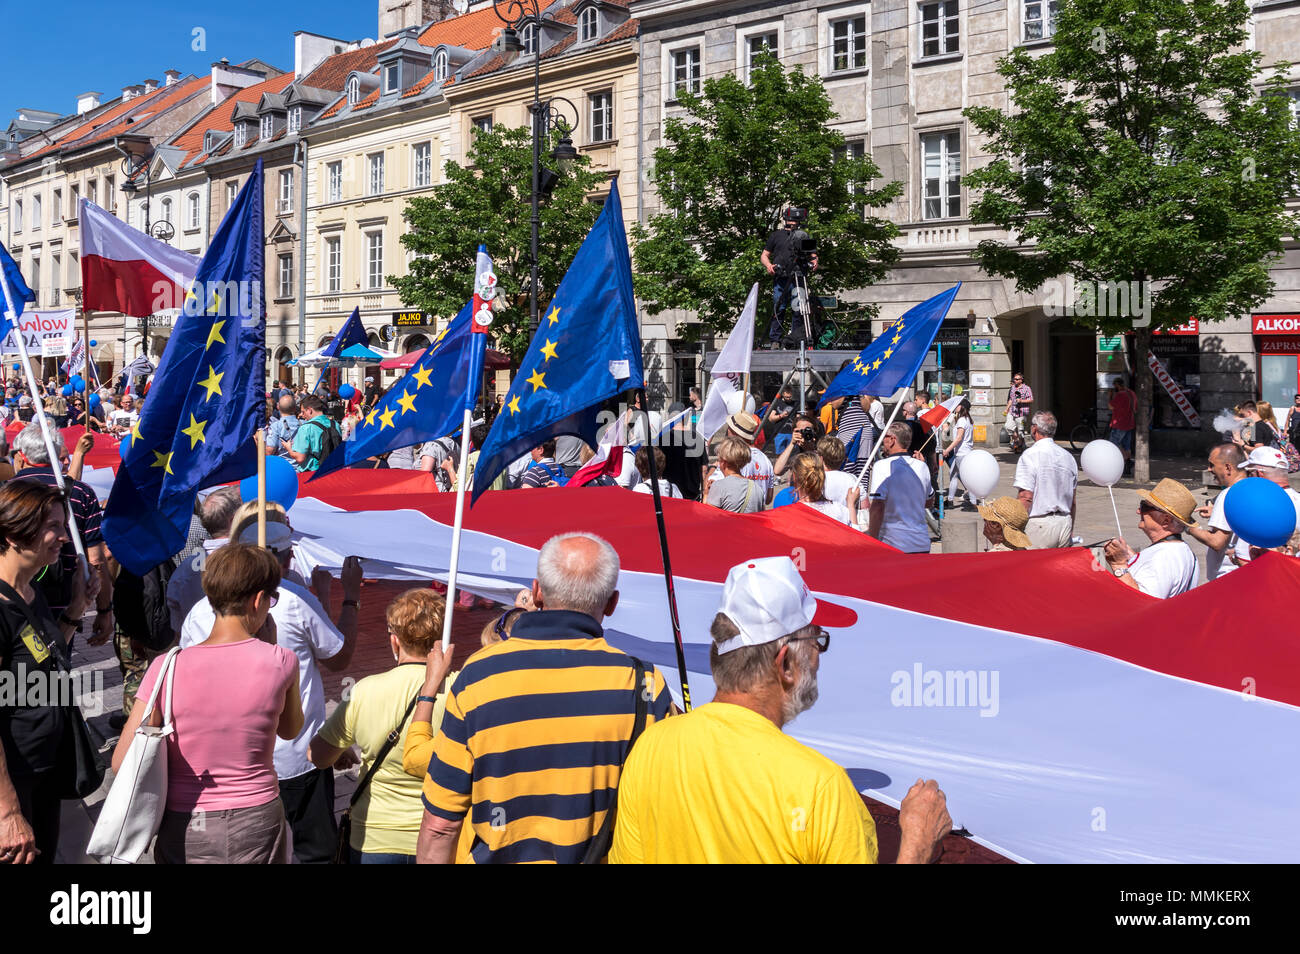 Warsaw, Poland. 12th May 2018. Thousands of anti-government protesters attend pro-European Freedom March organised in the Poland's capital against the nationalist government, the ruling Law and Justice Party (Prawo i Sprawiedliwosc) and its leader Mr. Jaroslaw Kaczynski. Credit: dario photography/Alamy Live News Stock Photo